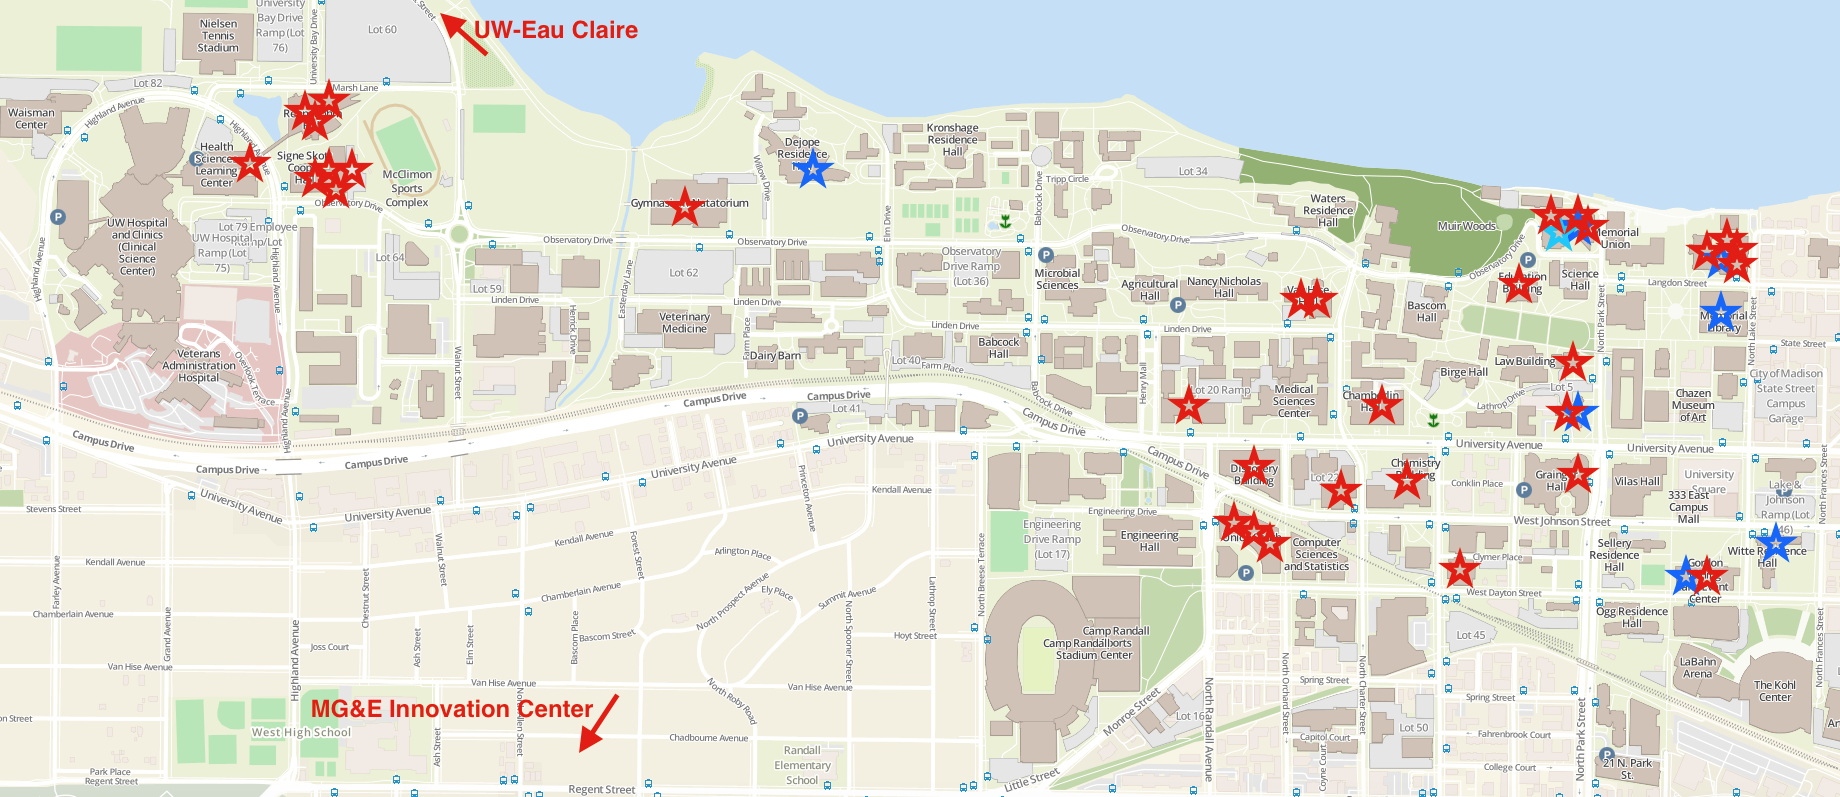 A map of the UW-Madison campus with red stars showing locations where Outreach instruction has occurred in the fall of 2016, as of November 7th. Substantially more of the campus is covered than by satellite locations alone.